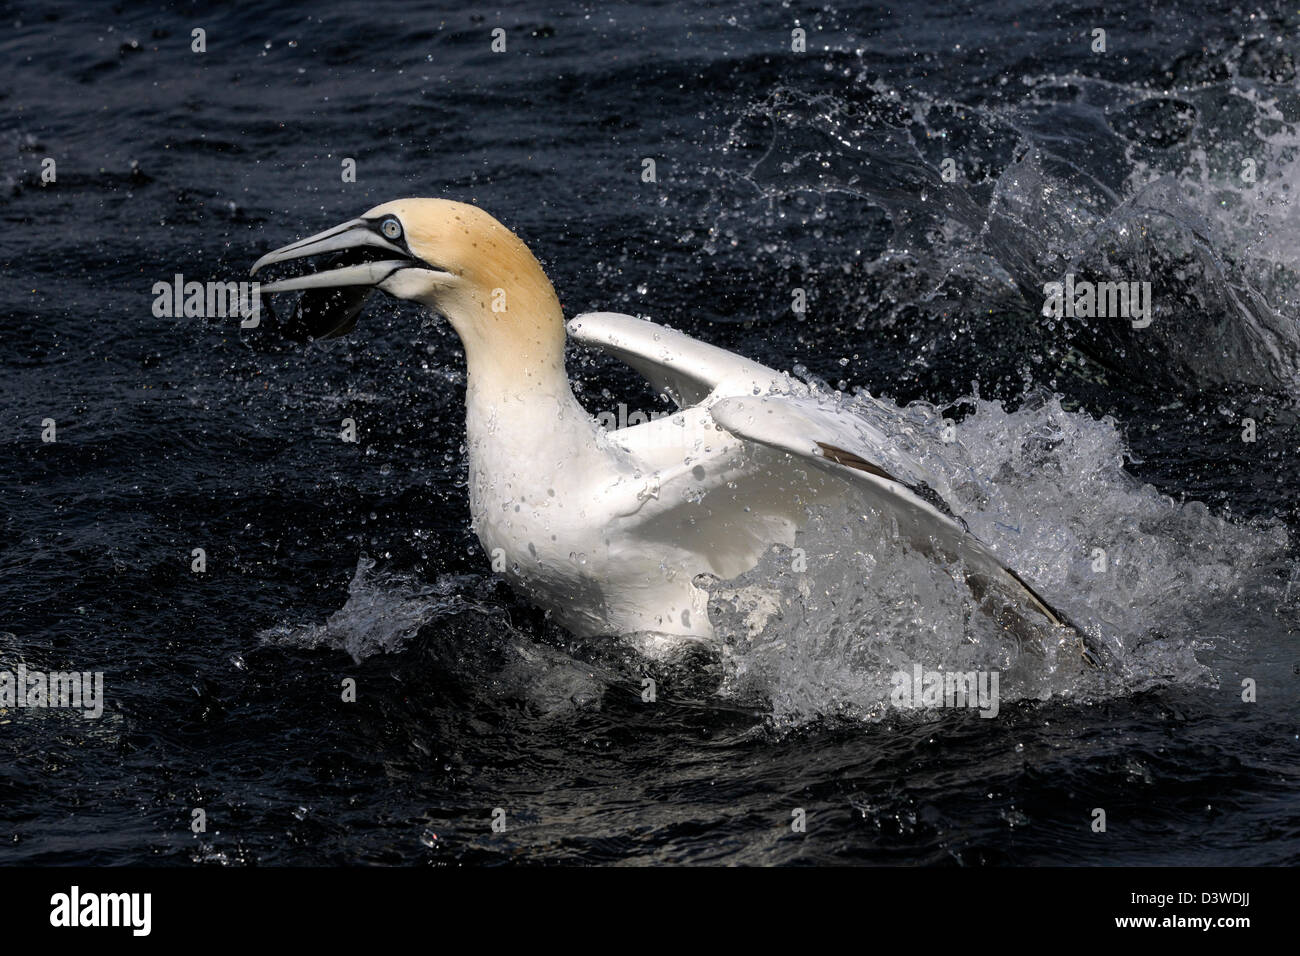 Northern Gannet diving up with caught fish in beak. - Stock Image